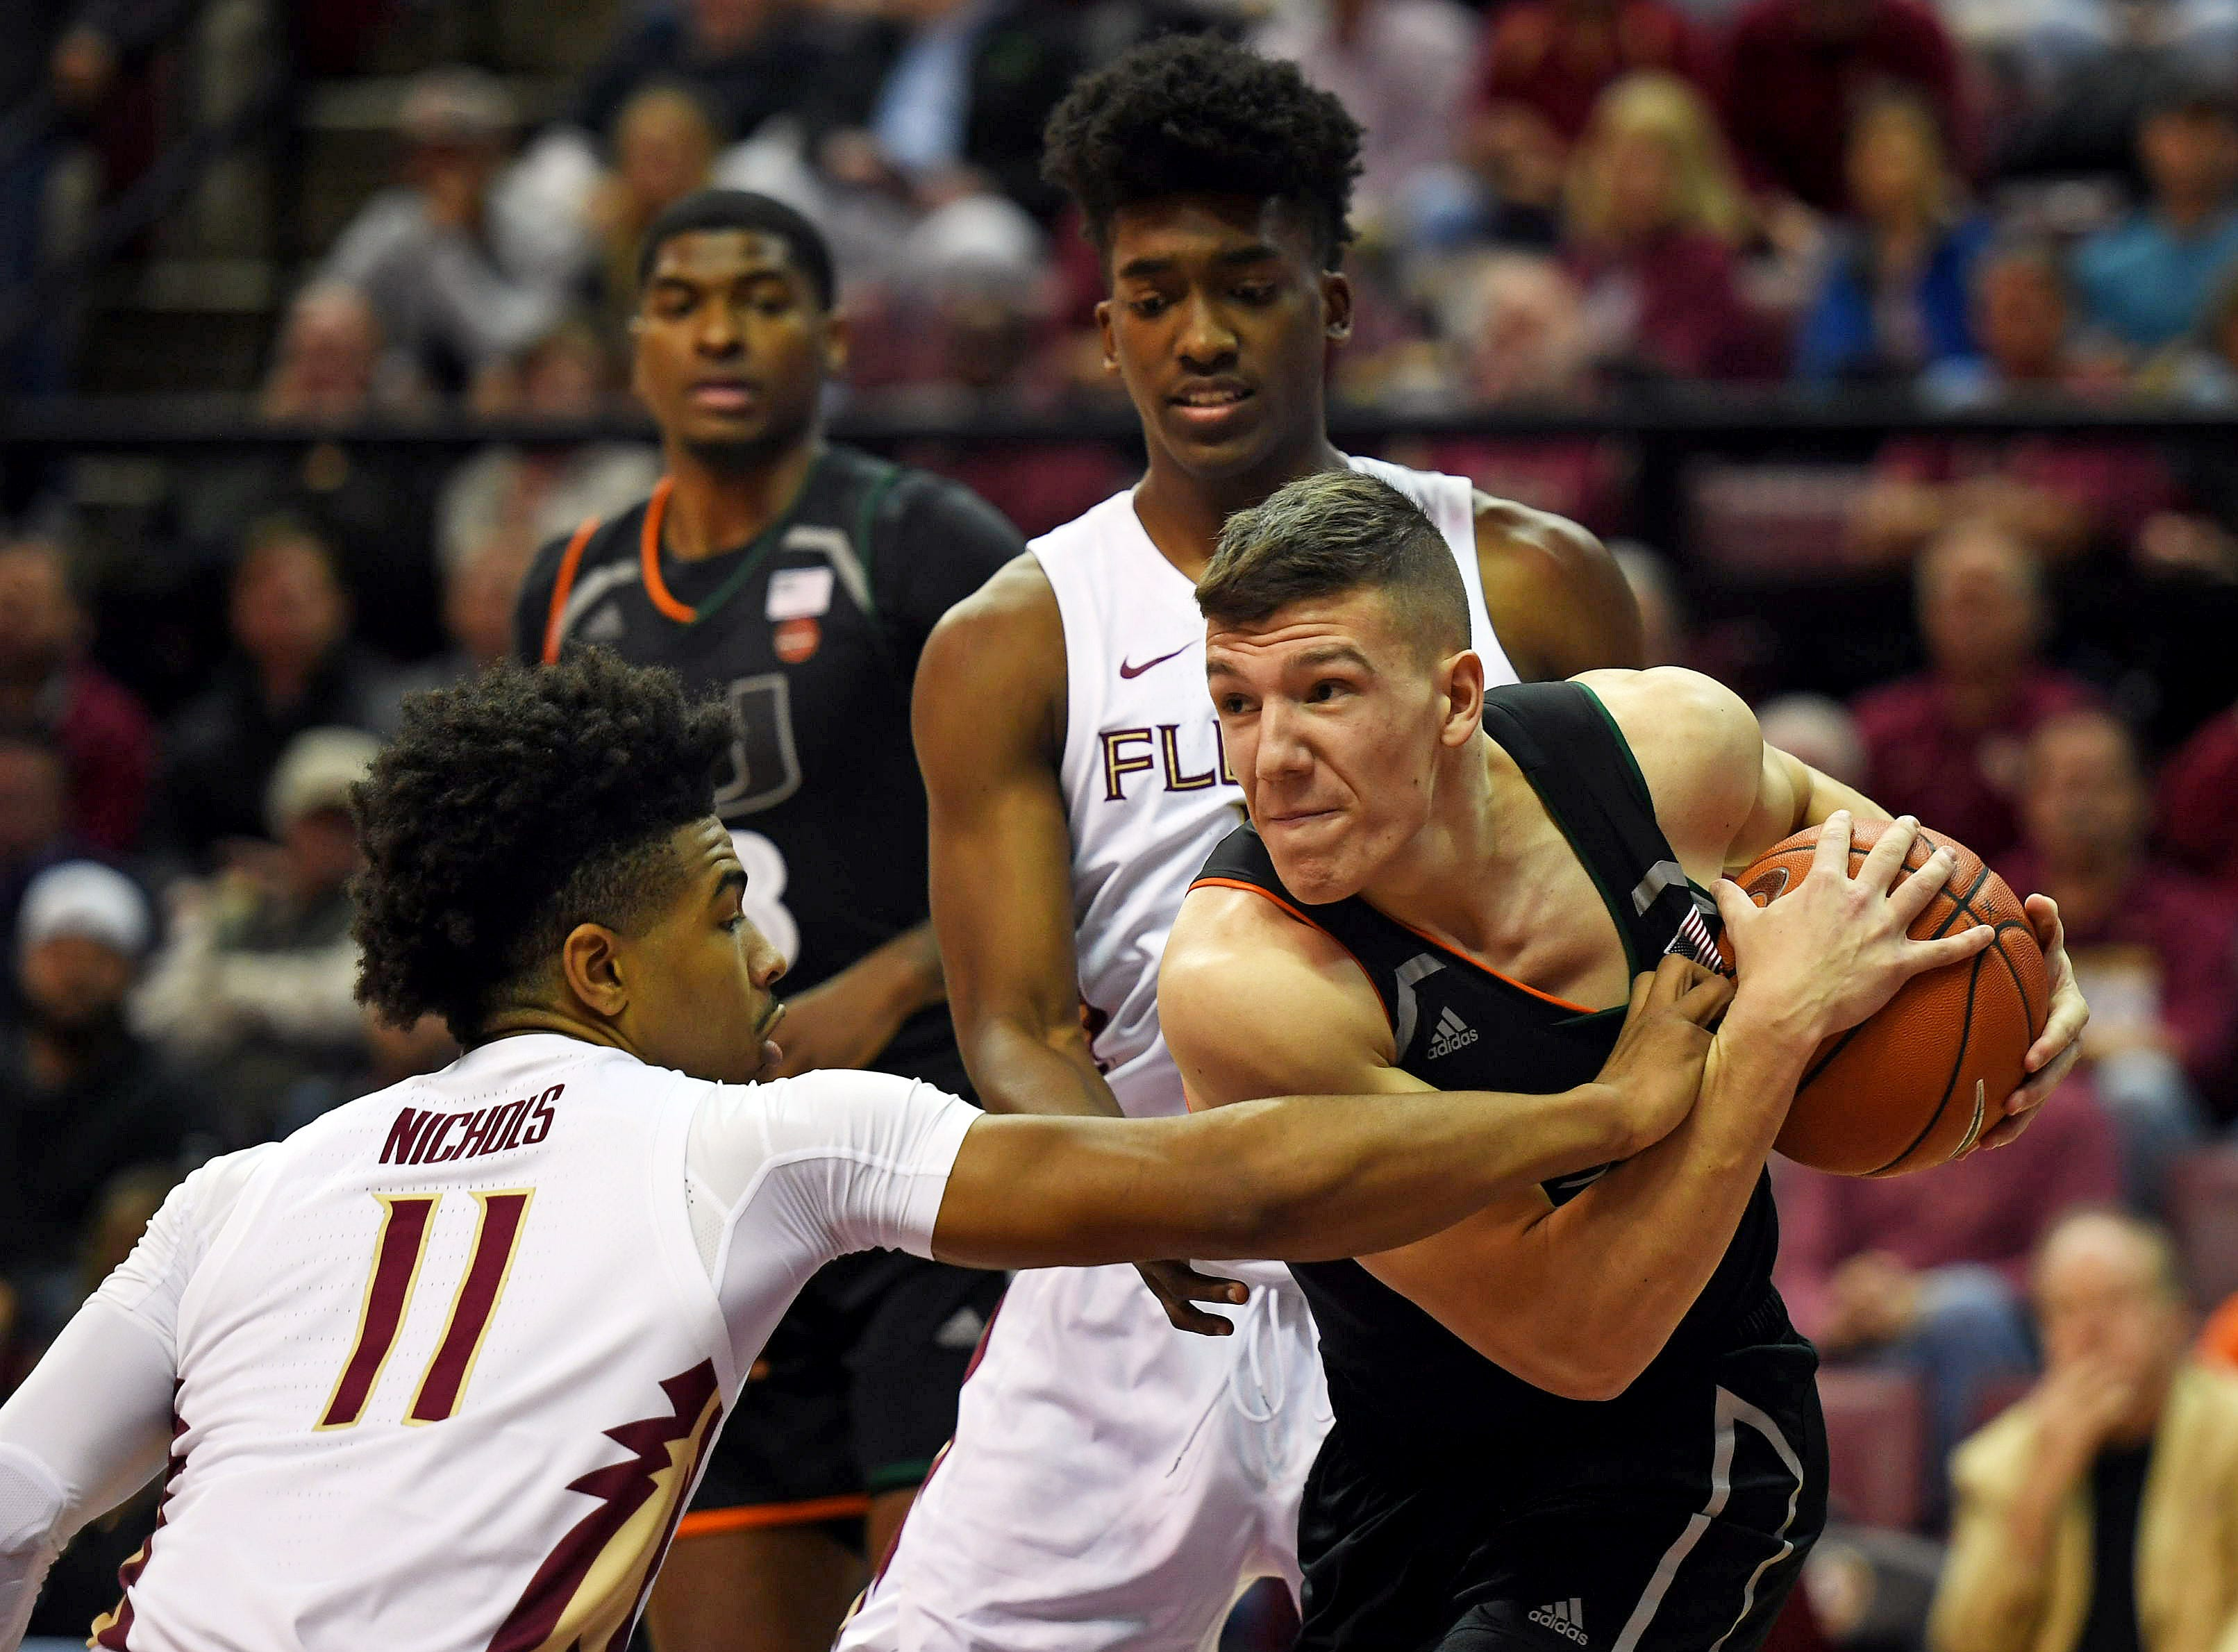 Jan 9, 2019; Tallahassee, FL, USA; Miami Hurricanes guard Dejan Vasiljevic (1) protects the ball from Florida State Seminoles guard David Nichols (11) during the first half at Donald L. Tucker Center. Mandatory Credit: Melina Myers-USA TODAY Sports